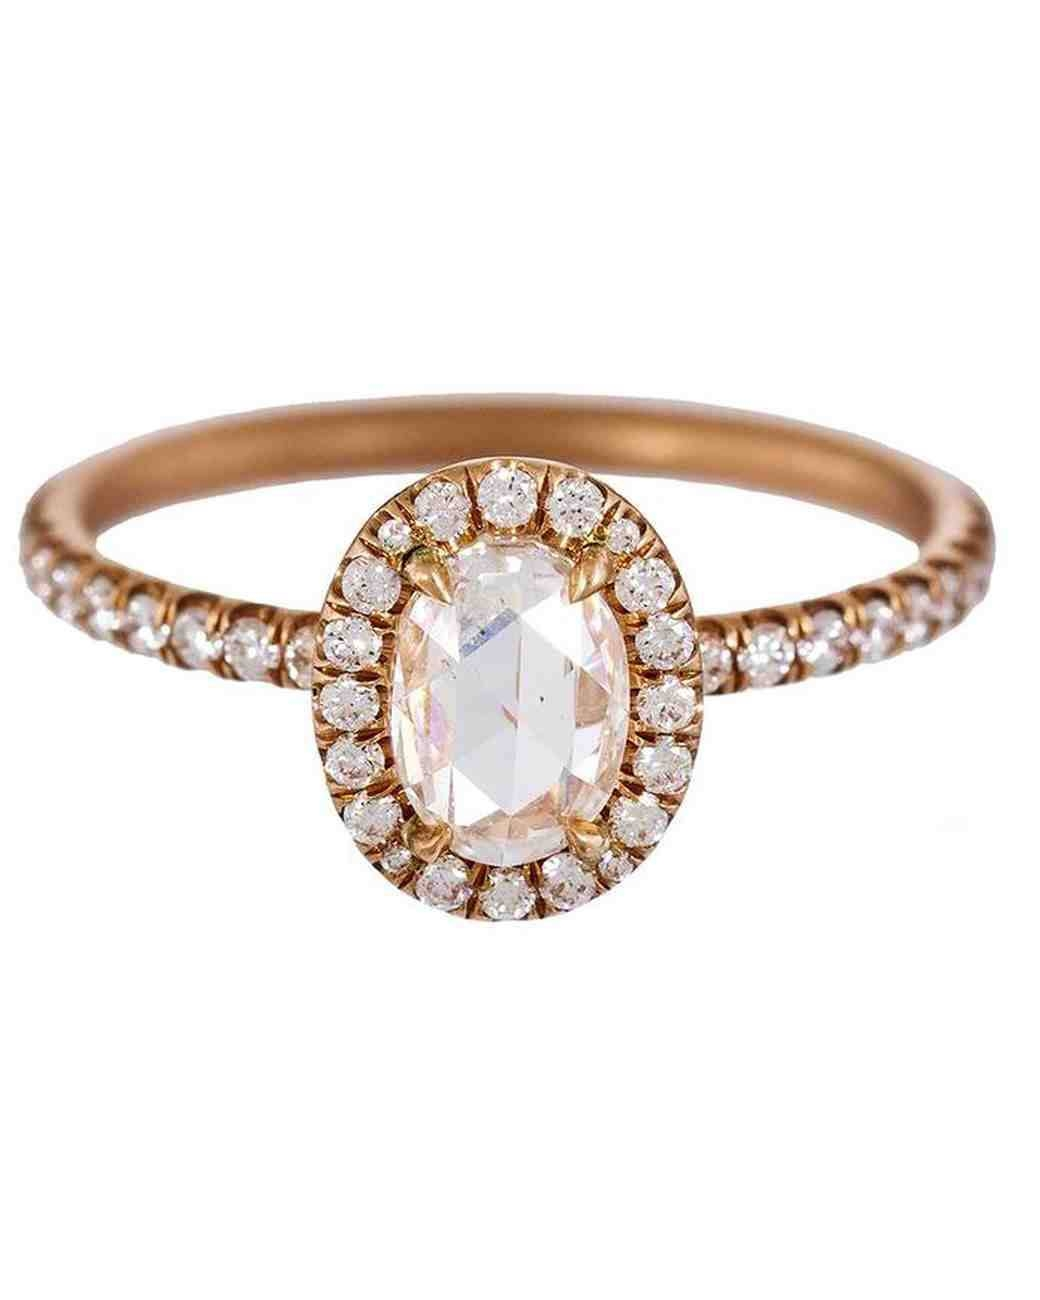 Engagement Rings : Diamond Rings Stunning Engagement Rings Without Within Engagement Rings Without Stone (View 5 of 15)